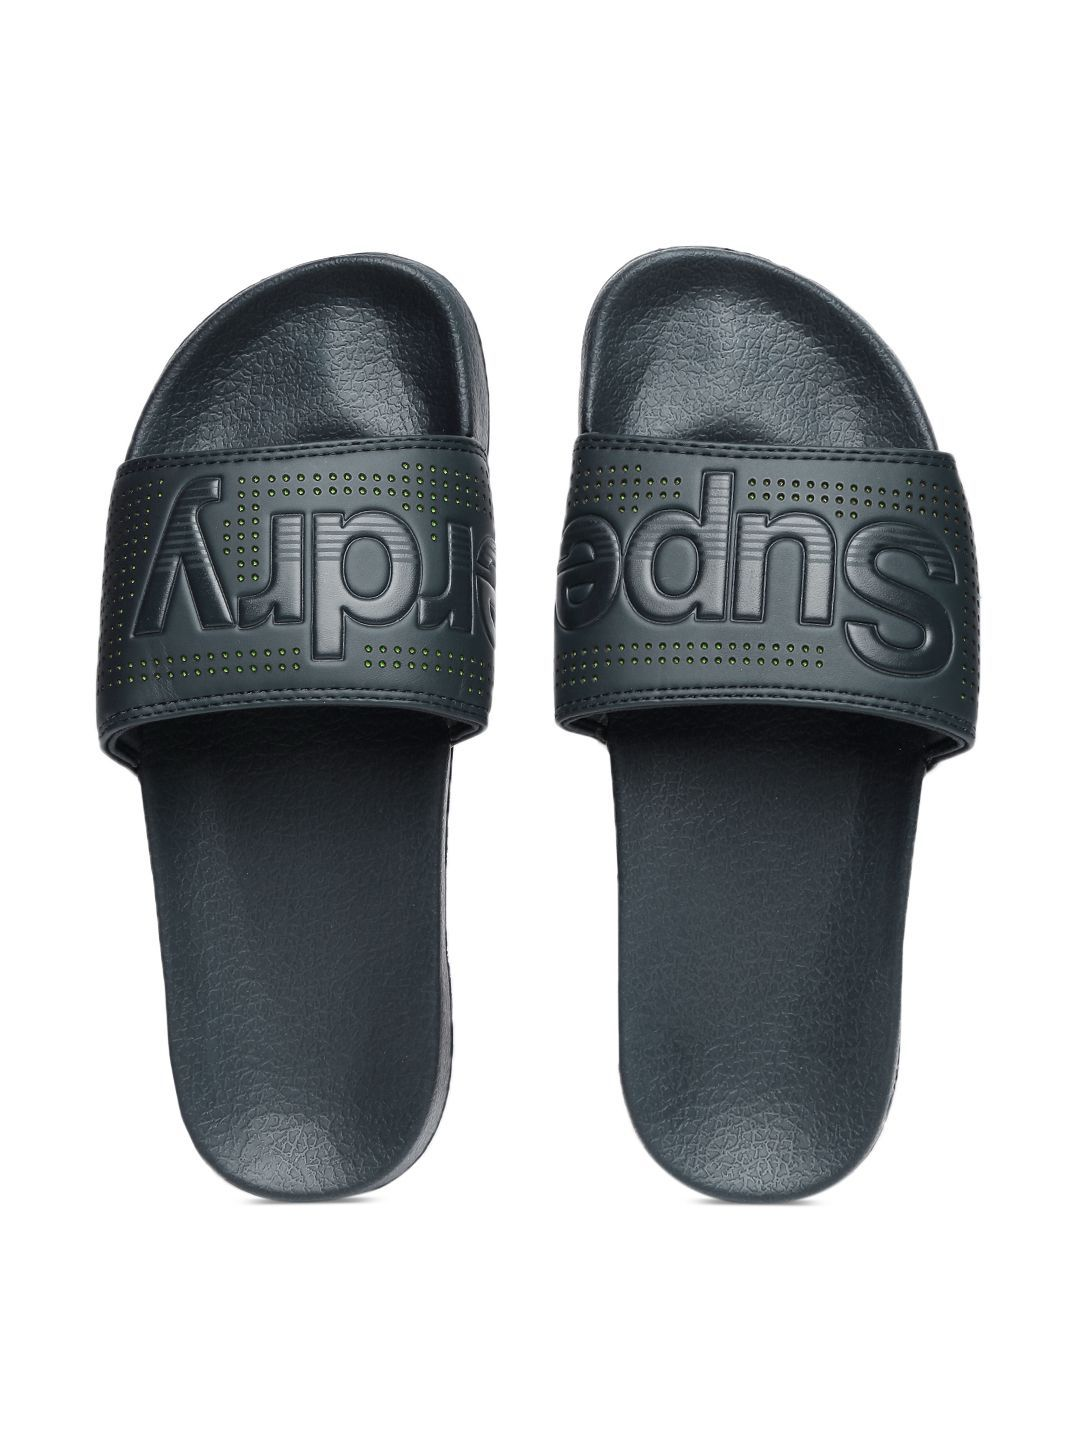 9972d5dbb491 Superdry Navy Slide Flip flop Price in India- Buy Superdry Navy Slide Flip  flop Online at Snapdeal